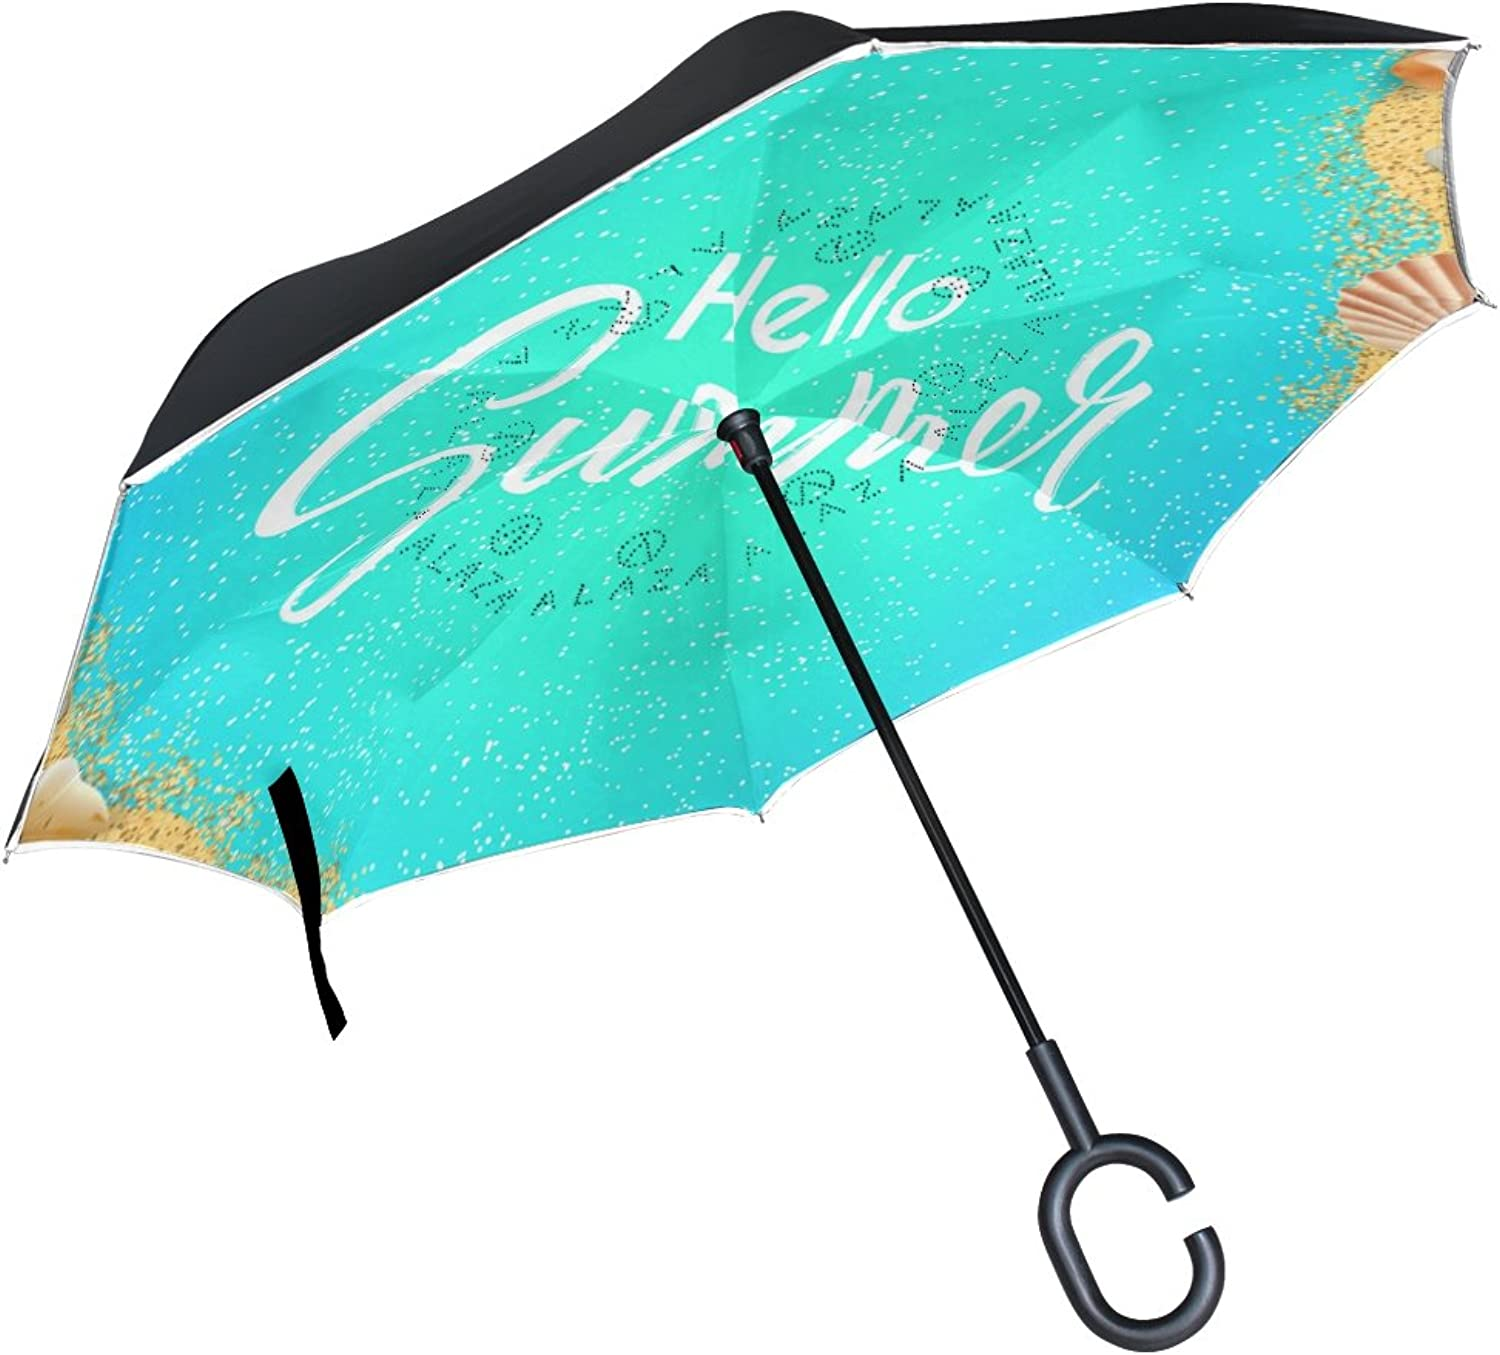 Mydaily Double Layer Ingreened Umbrella Cars Reverse Umbrella Hello Summer Tropical Beach Windproof UV Proof Travel Outdoor Umbrella